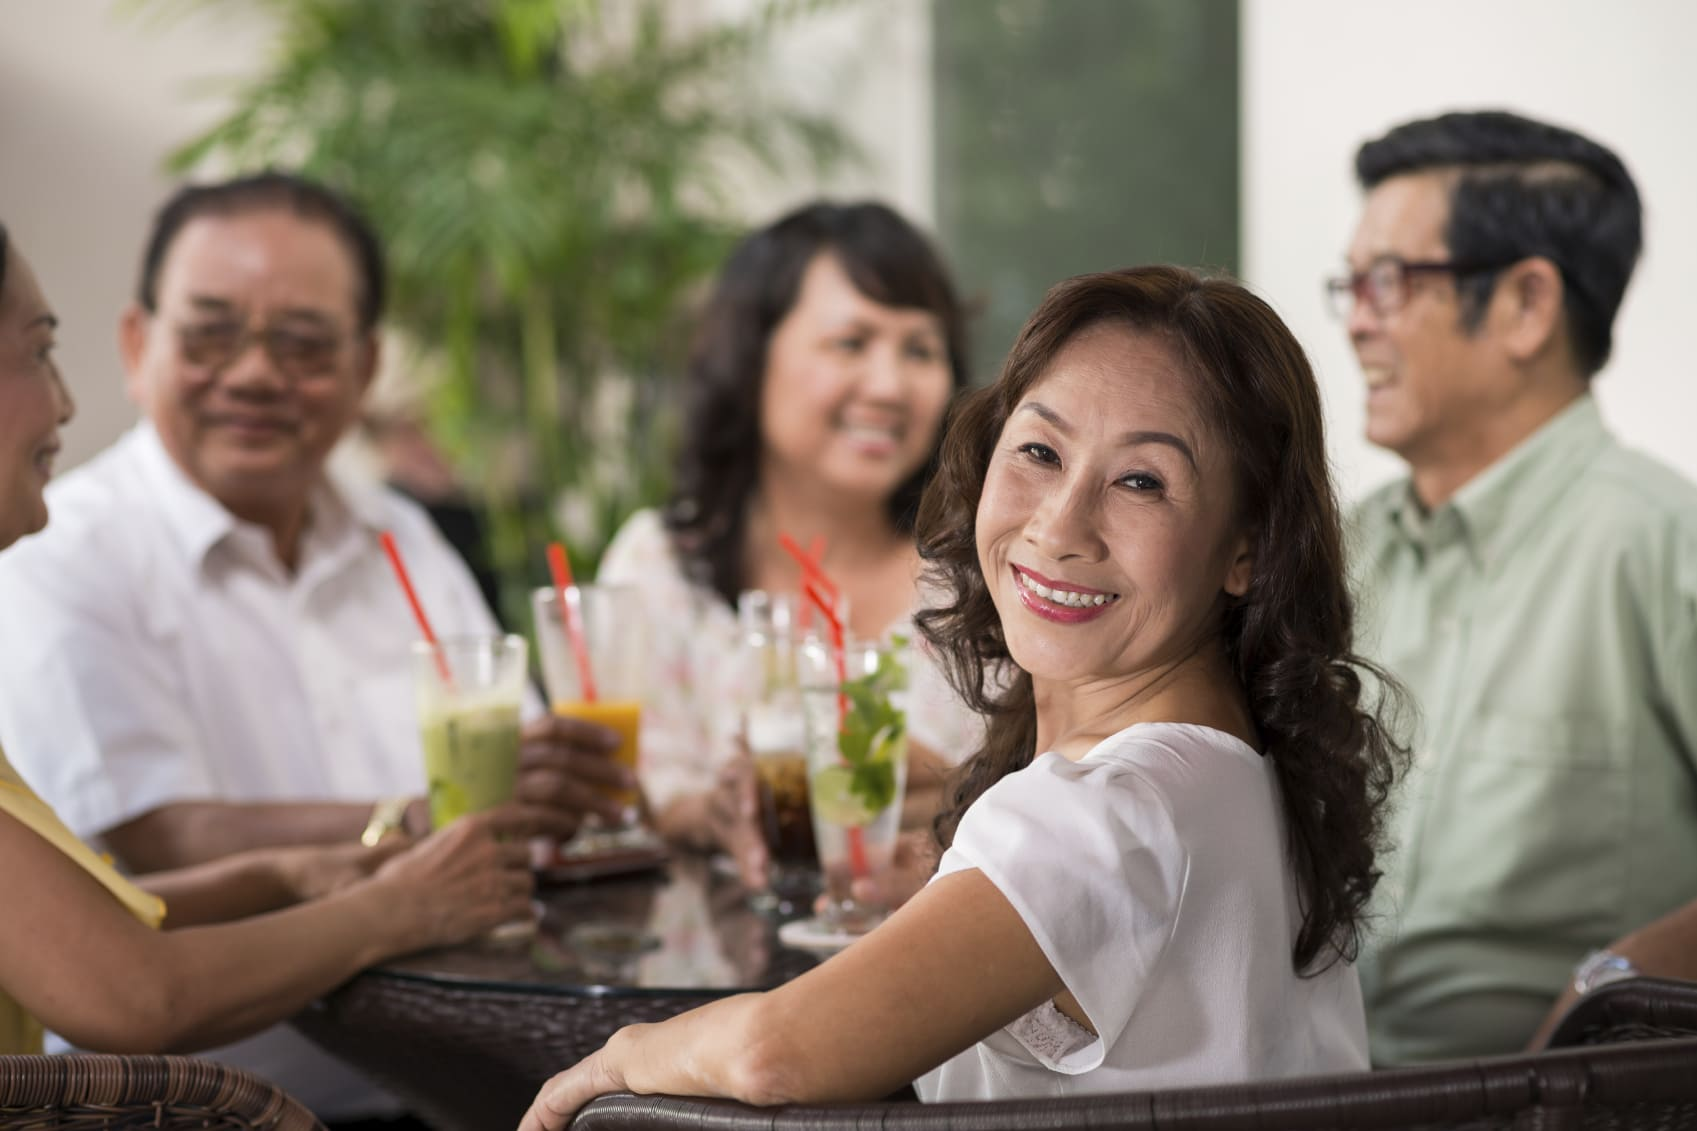 Pretty aged woman at party with her friends looking backward